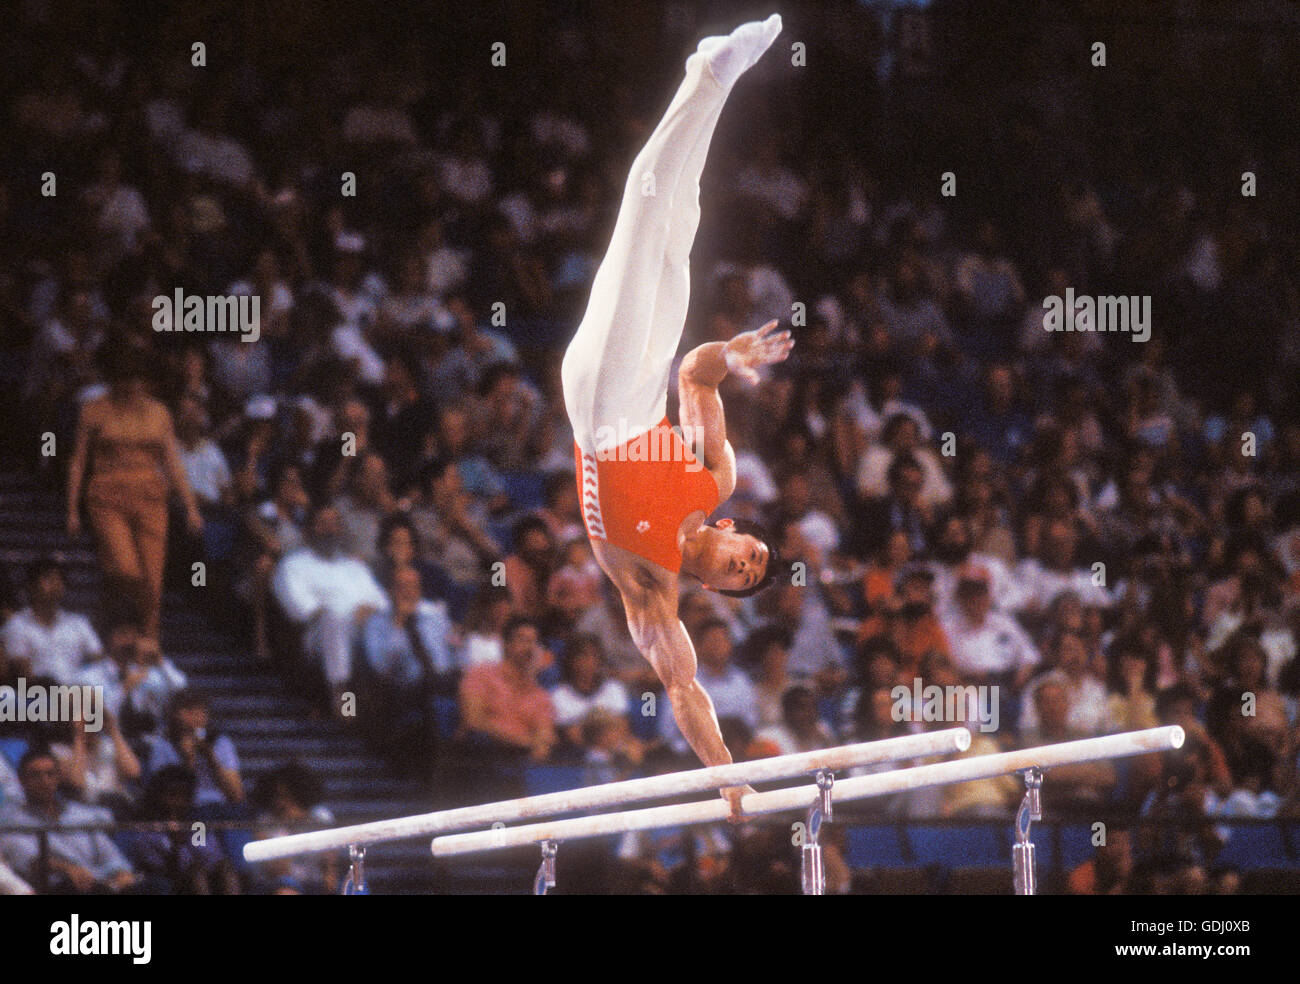 Fei Tong of China performs on parallel bars at 1984 Olympic Games in Los Angeles. - Stock Image